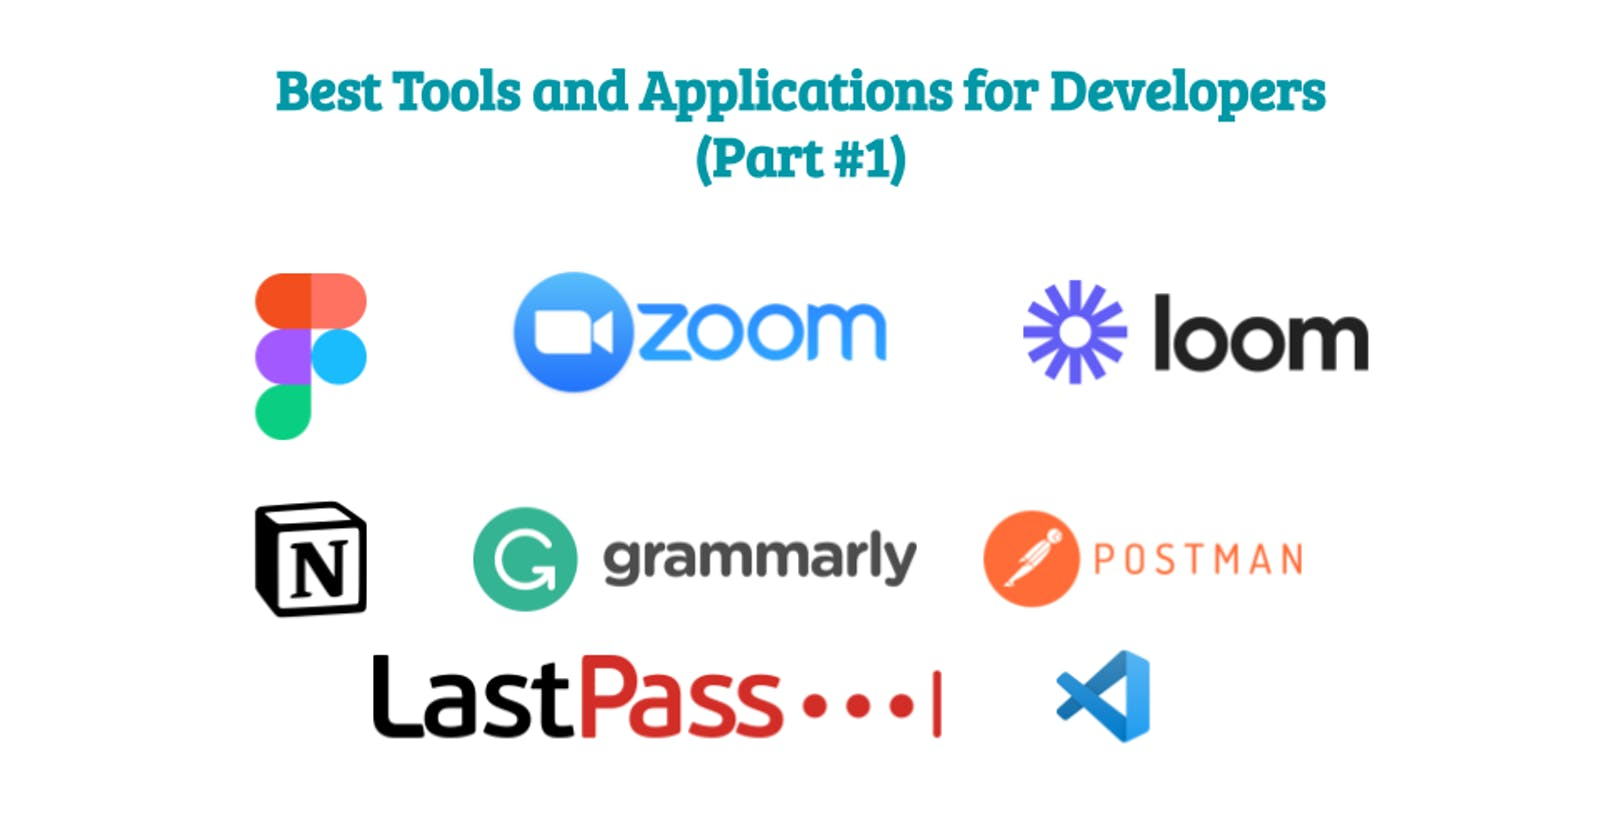 Best Tools and Applications for Developers (Part #1)